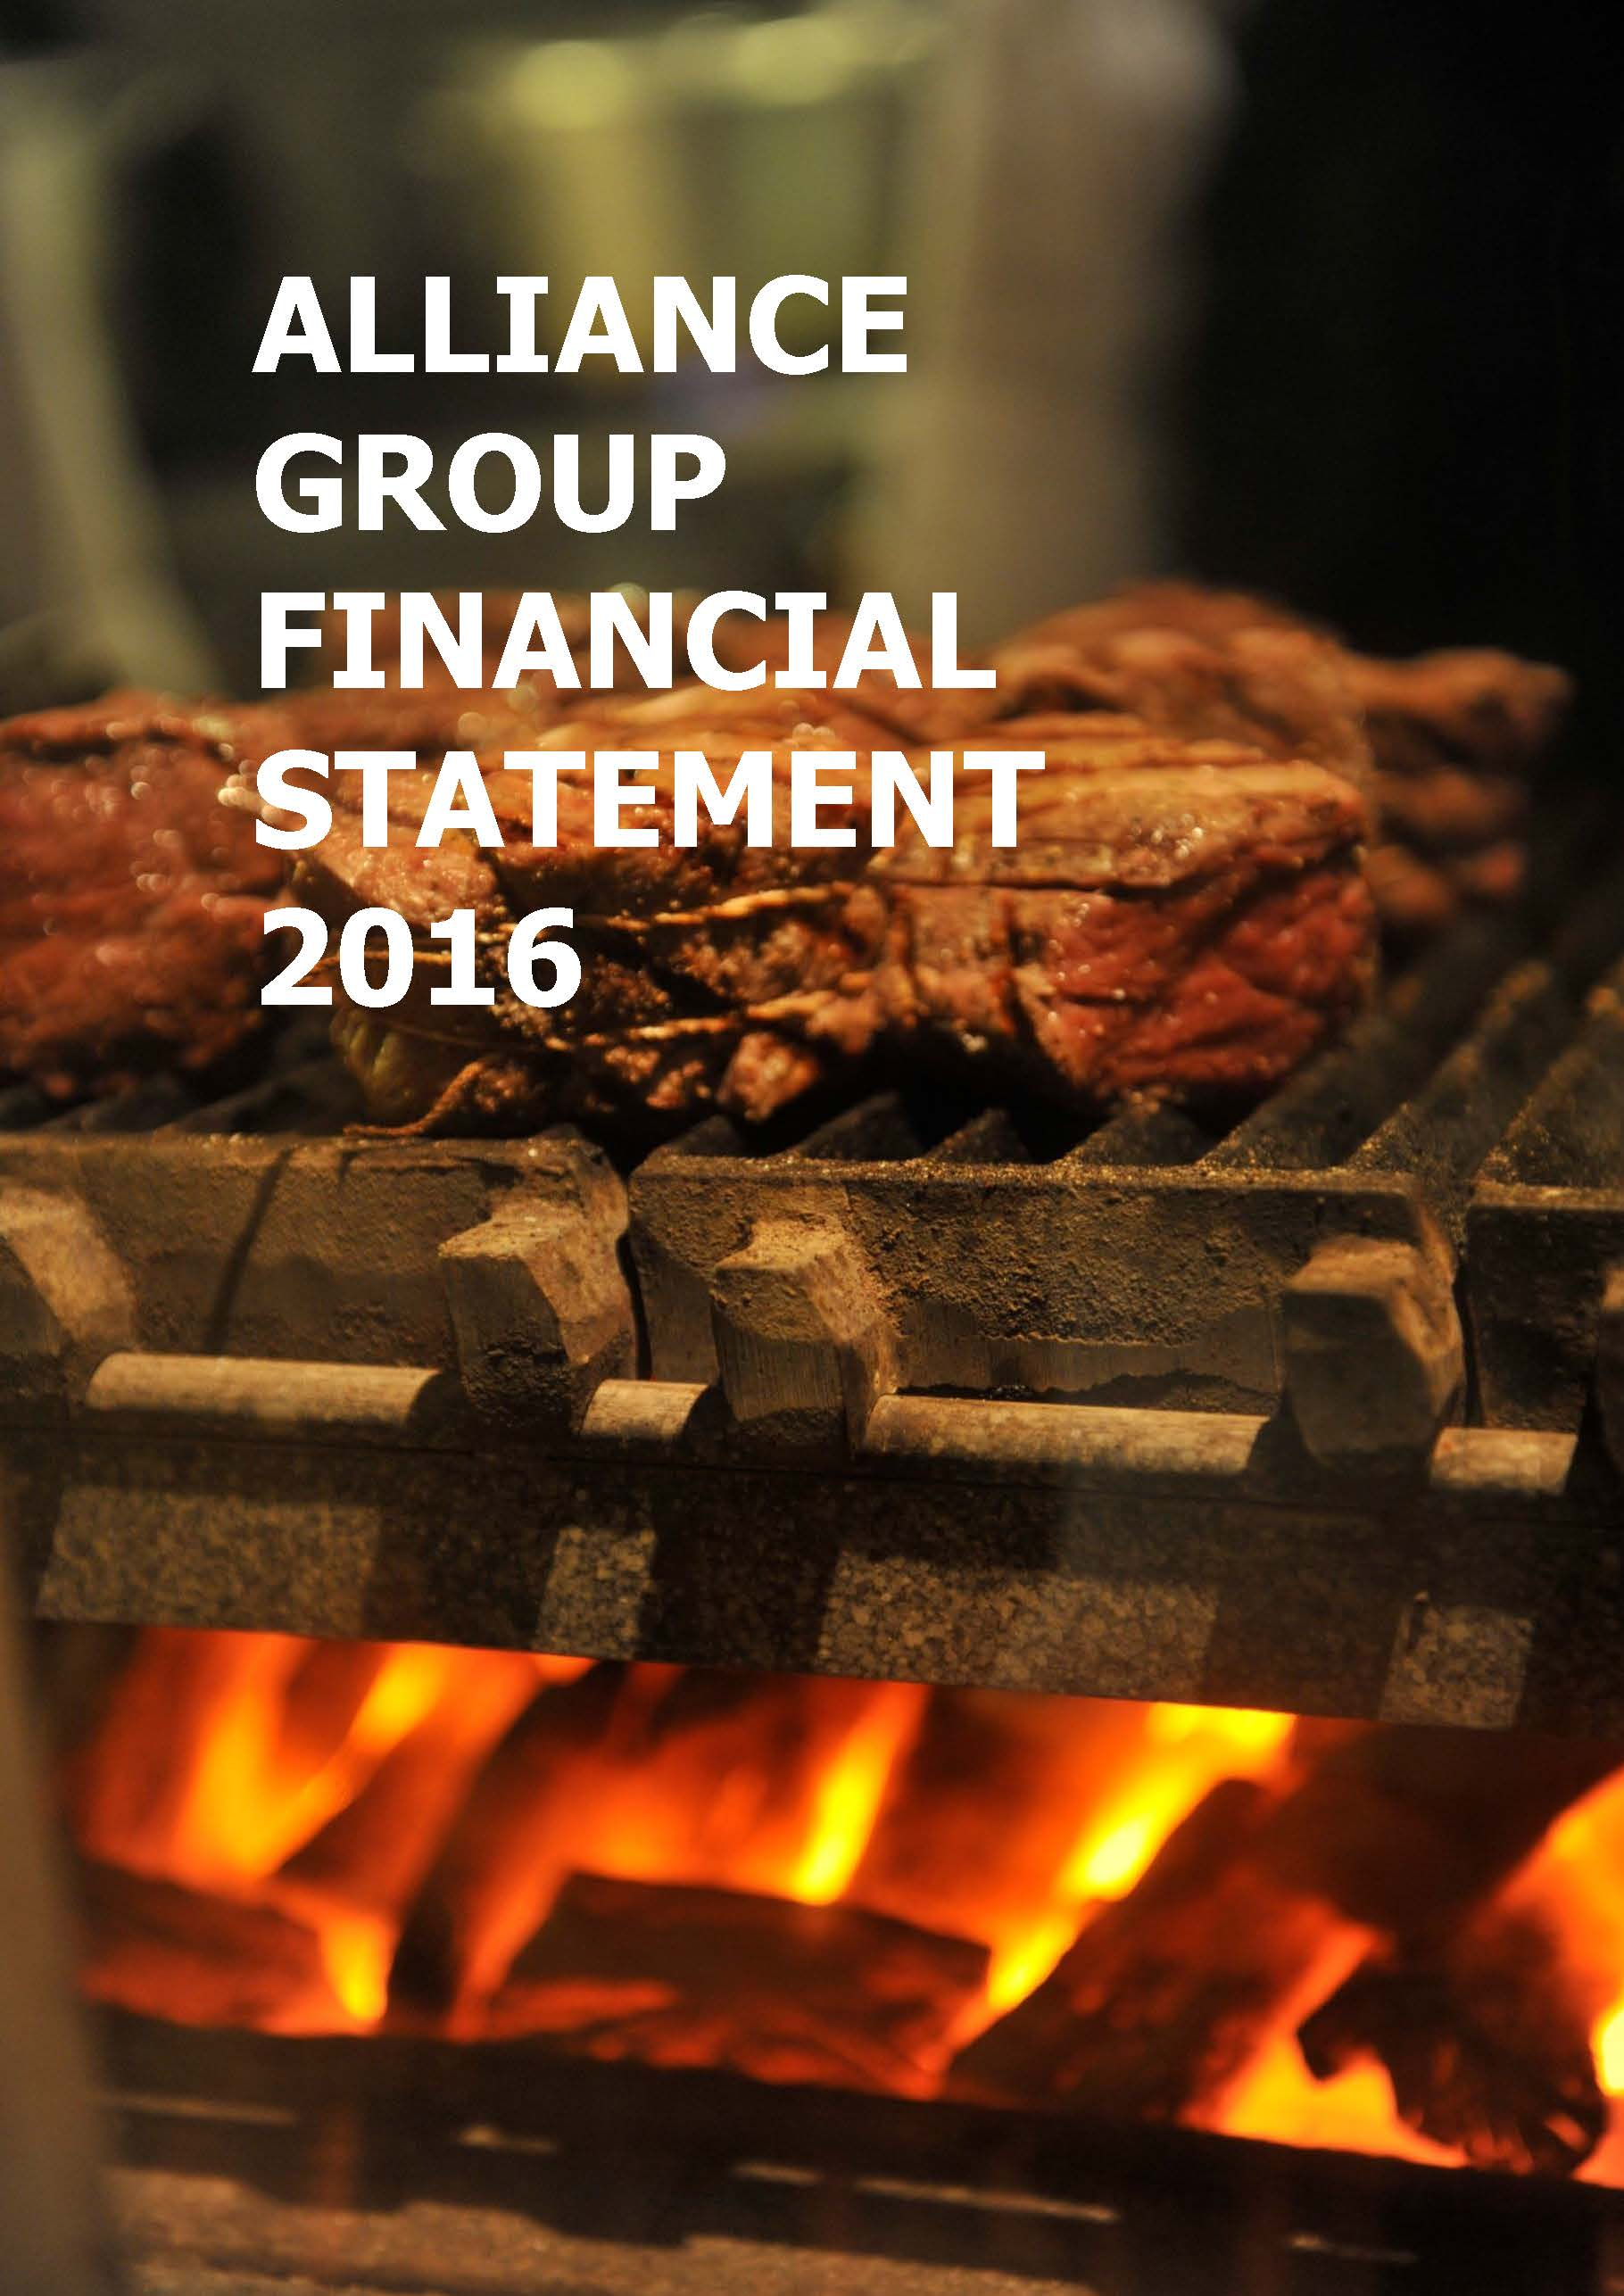 Alliance 2016 Financial Statement